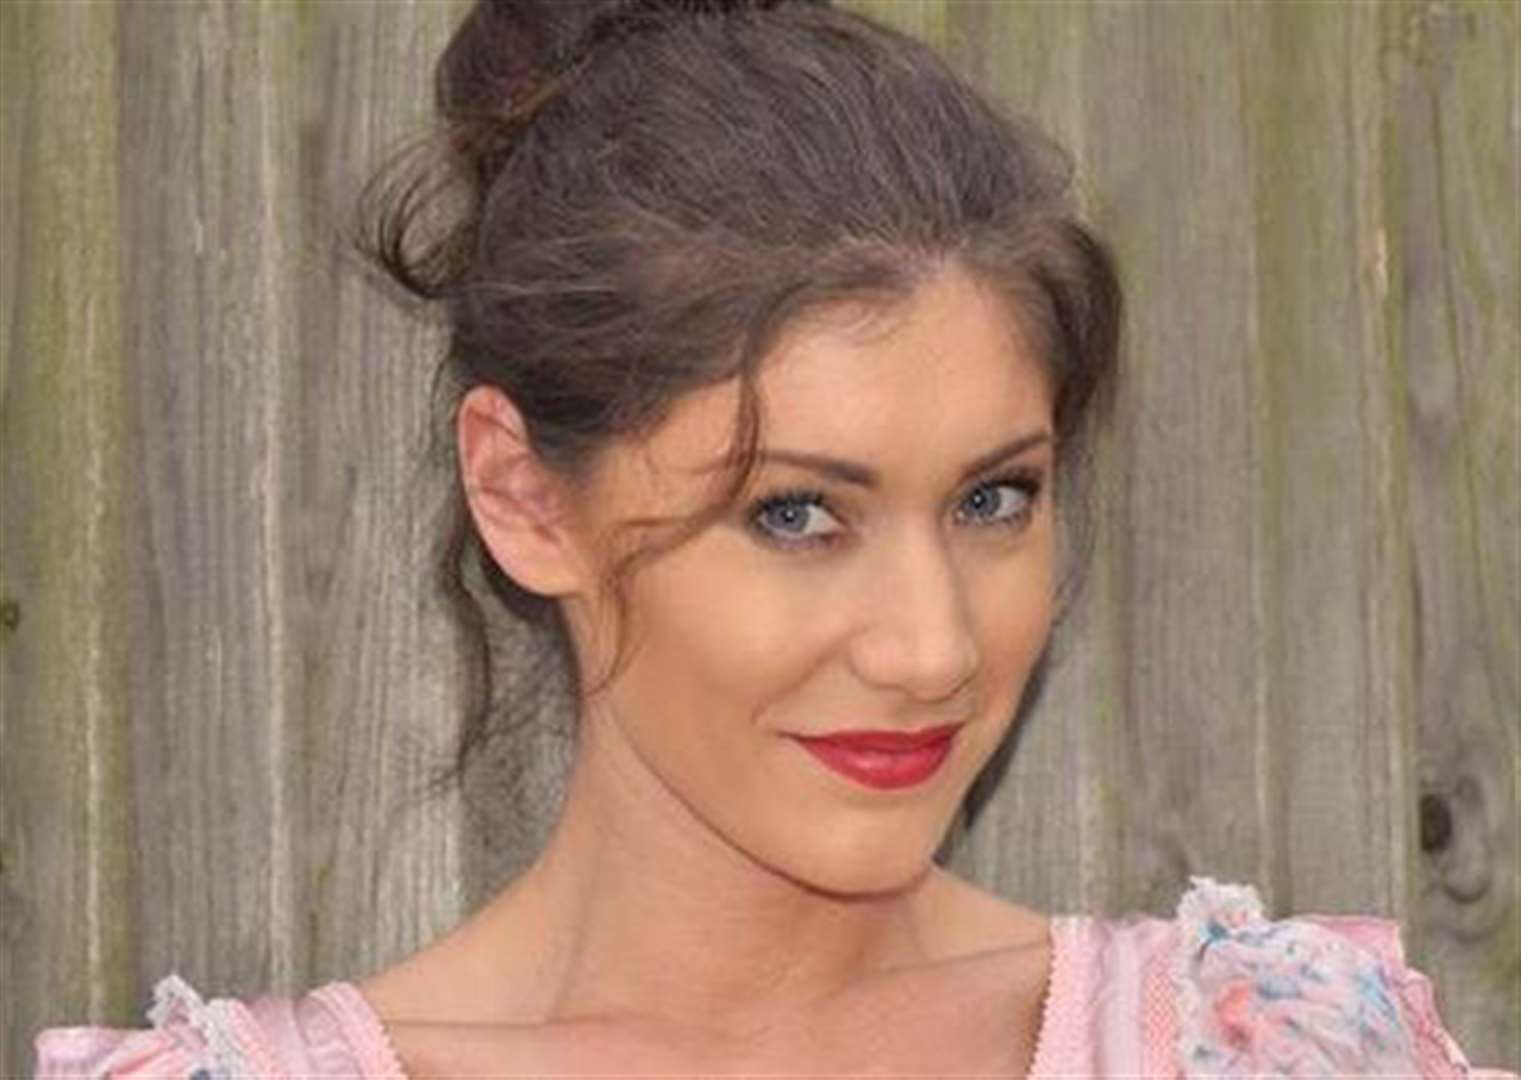 Outdoor show to bring Austen to life